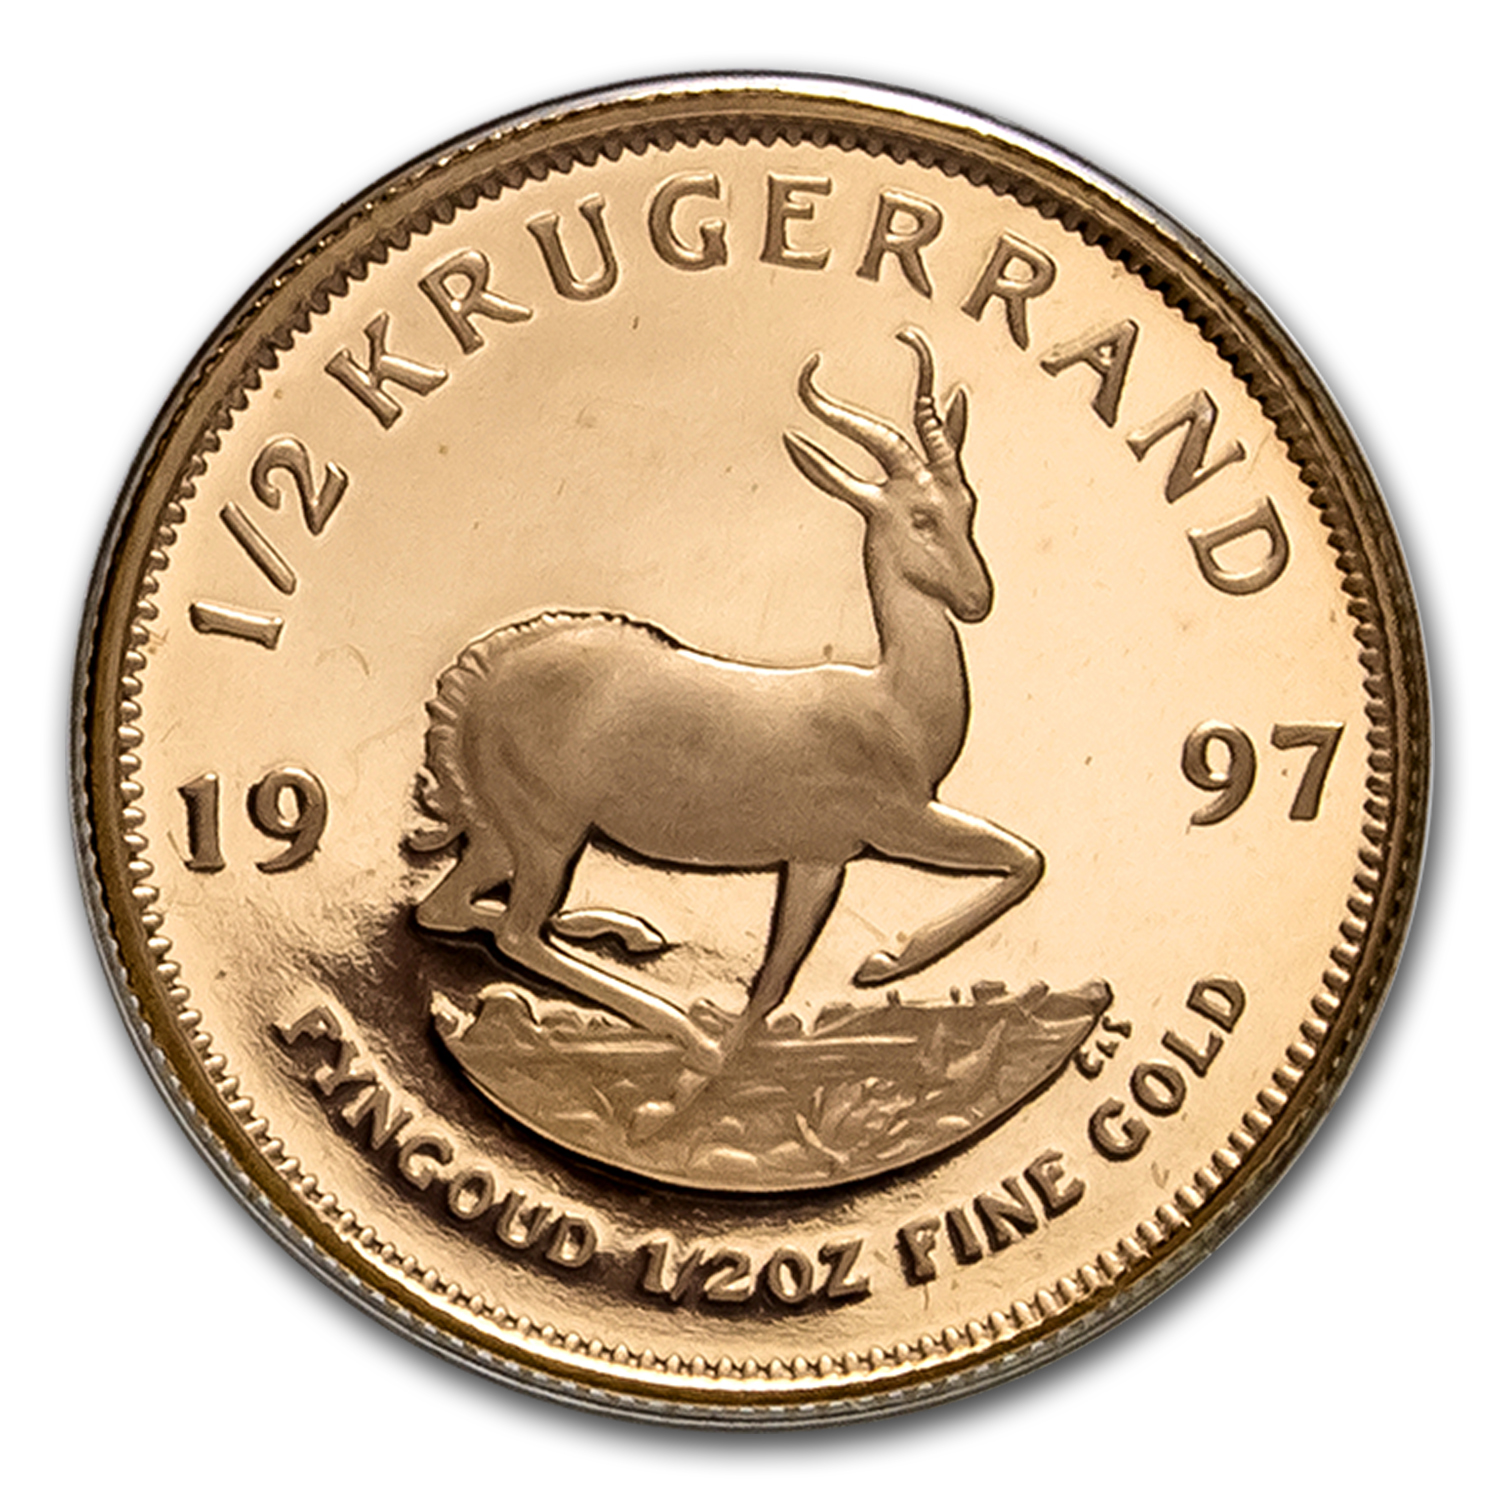 1997 South Africa 1/2 oz Proof Gold Krugerrand First Day Limited